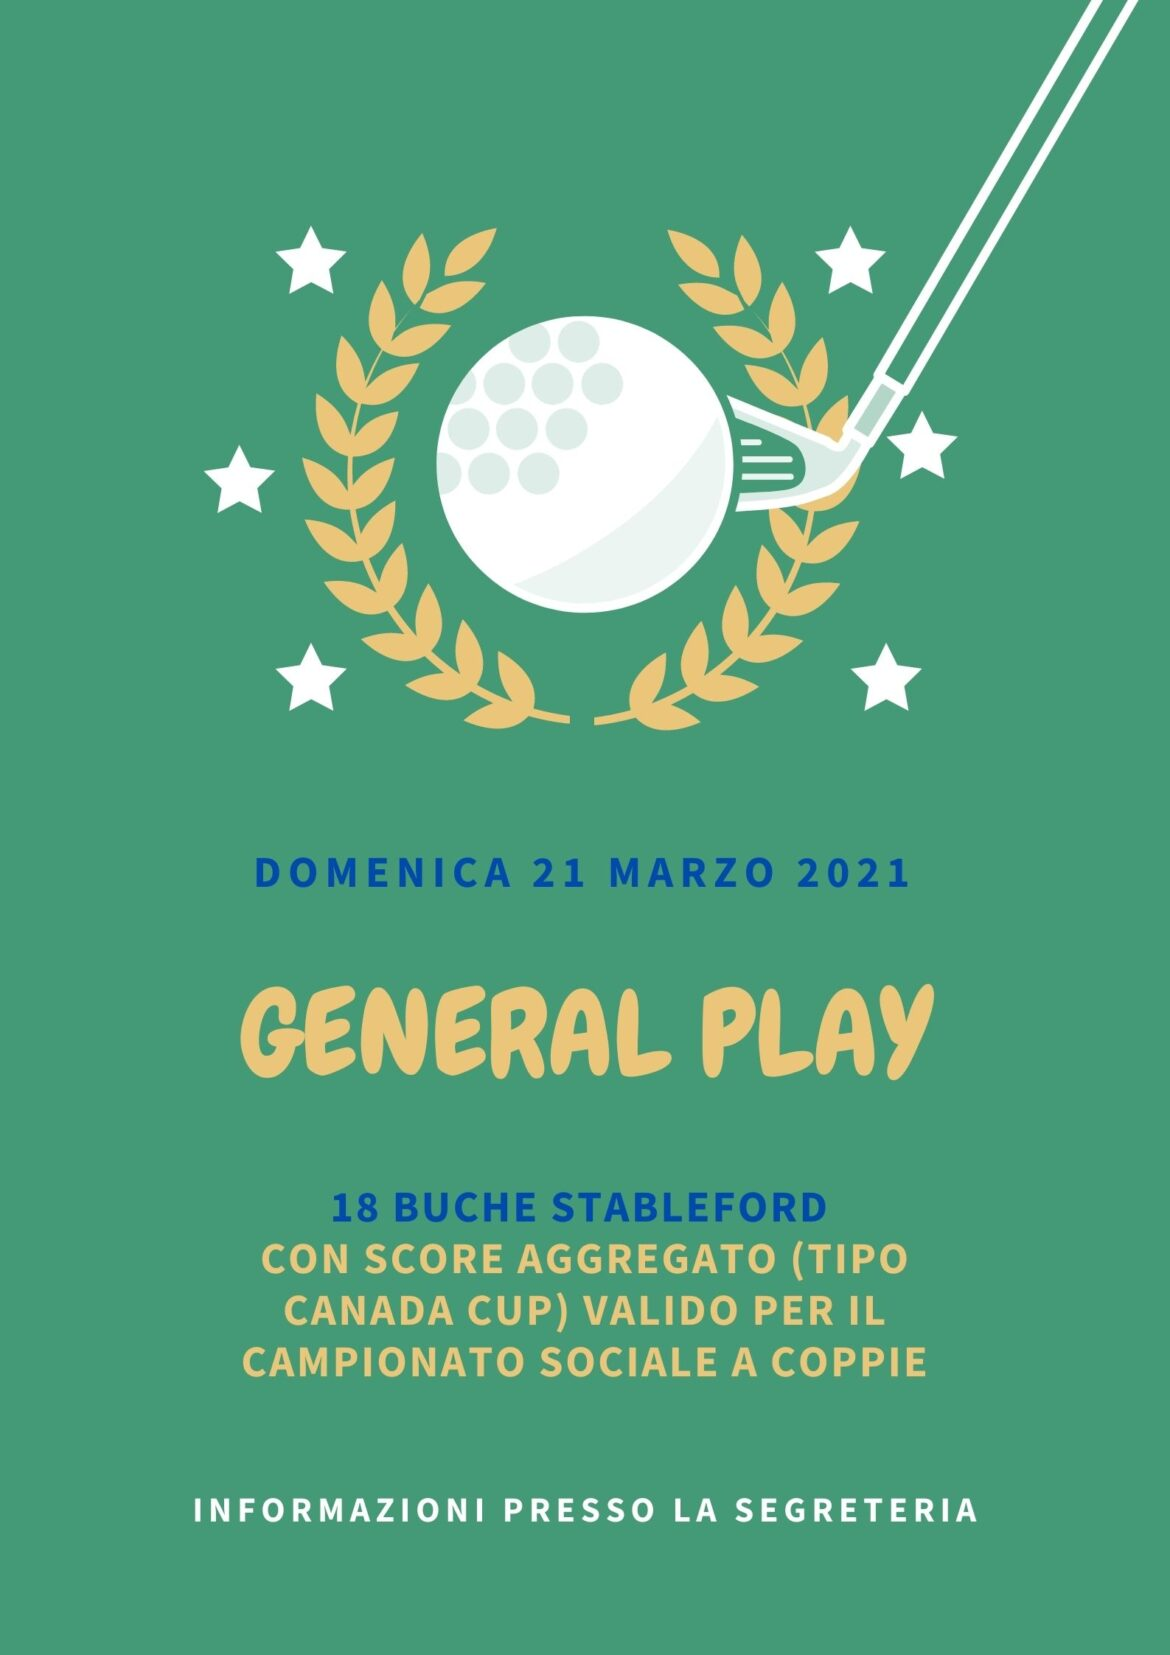 GENERAL PLAY del 21 MARZO 2021